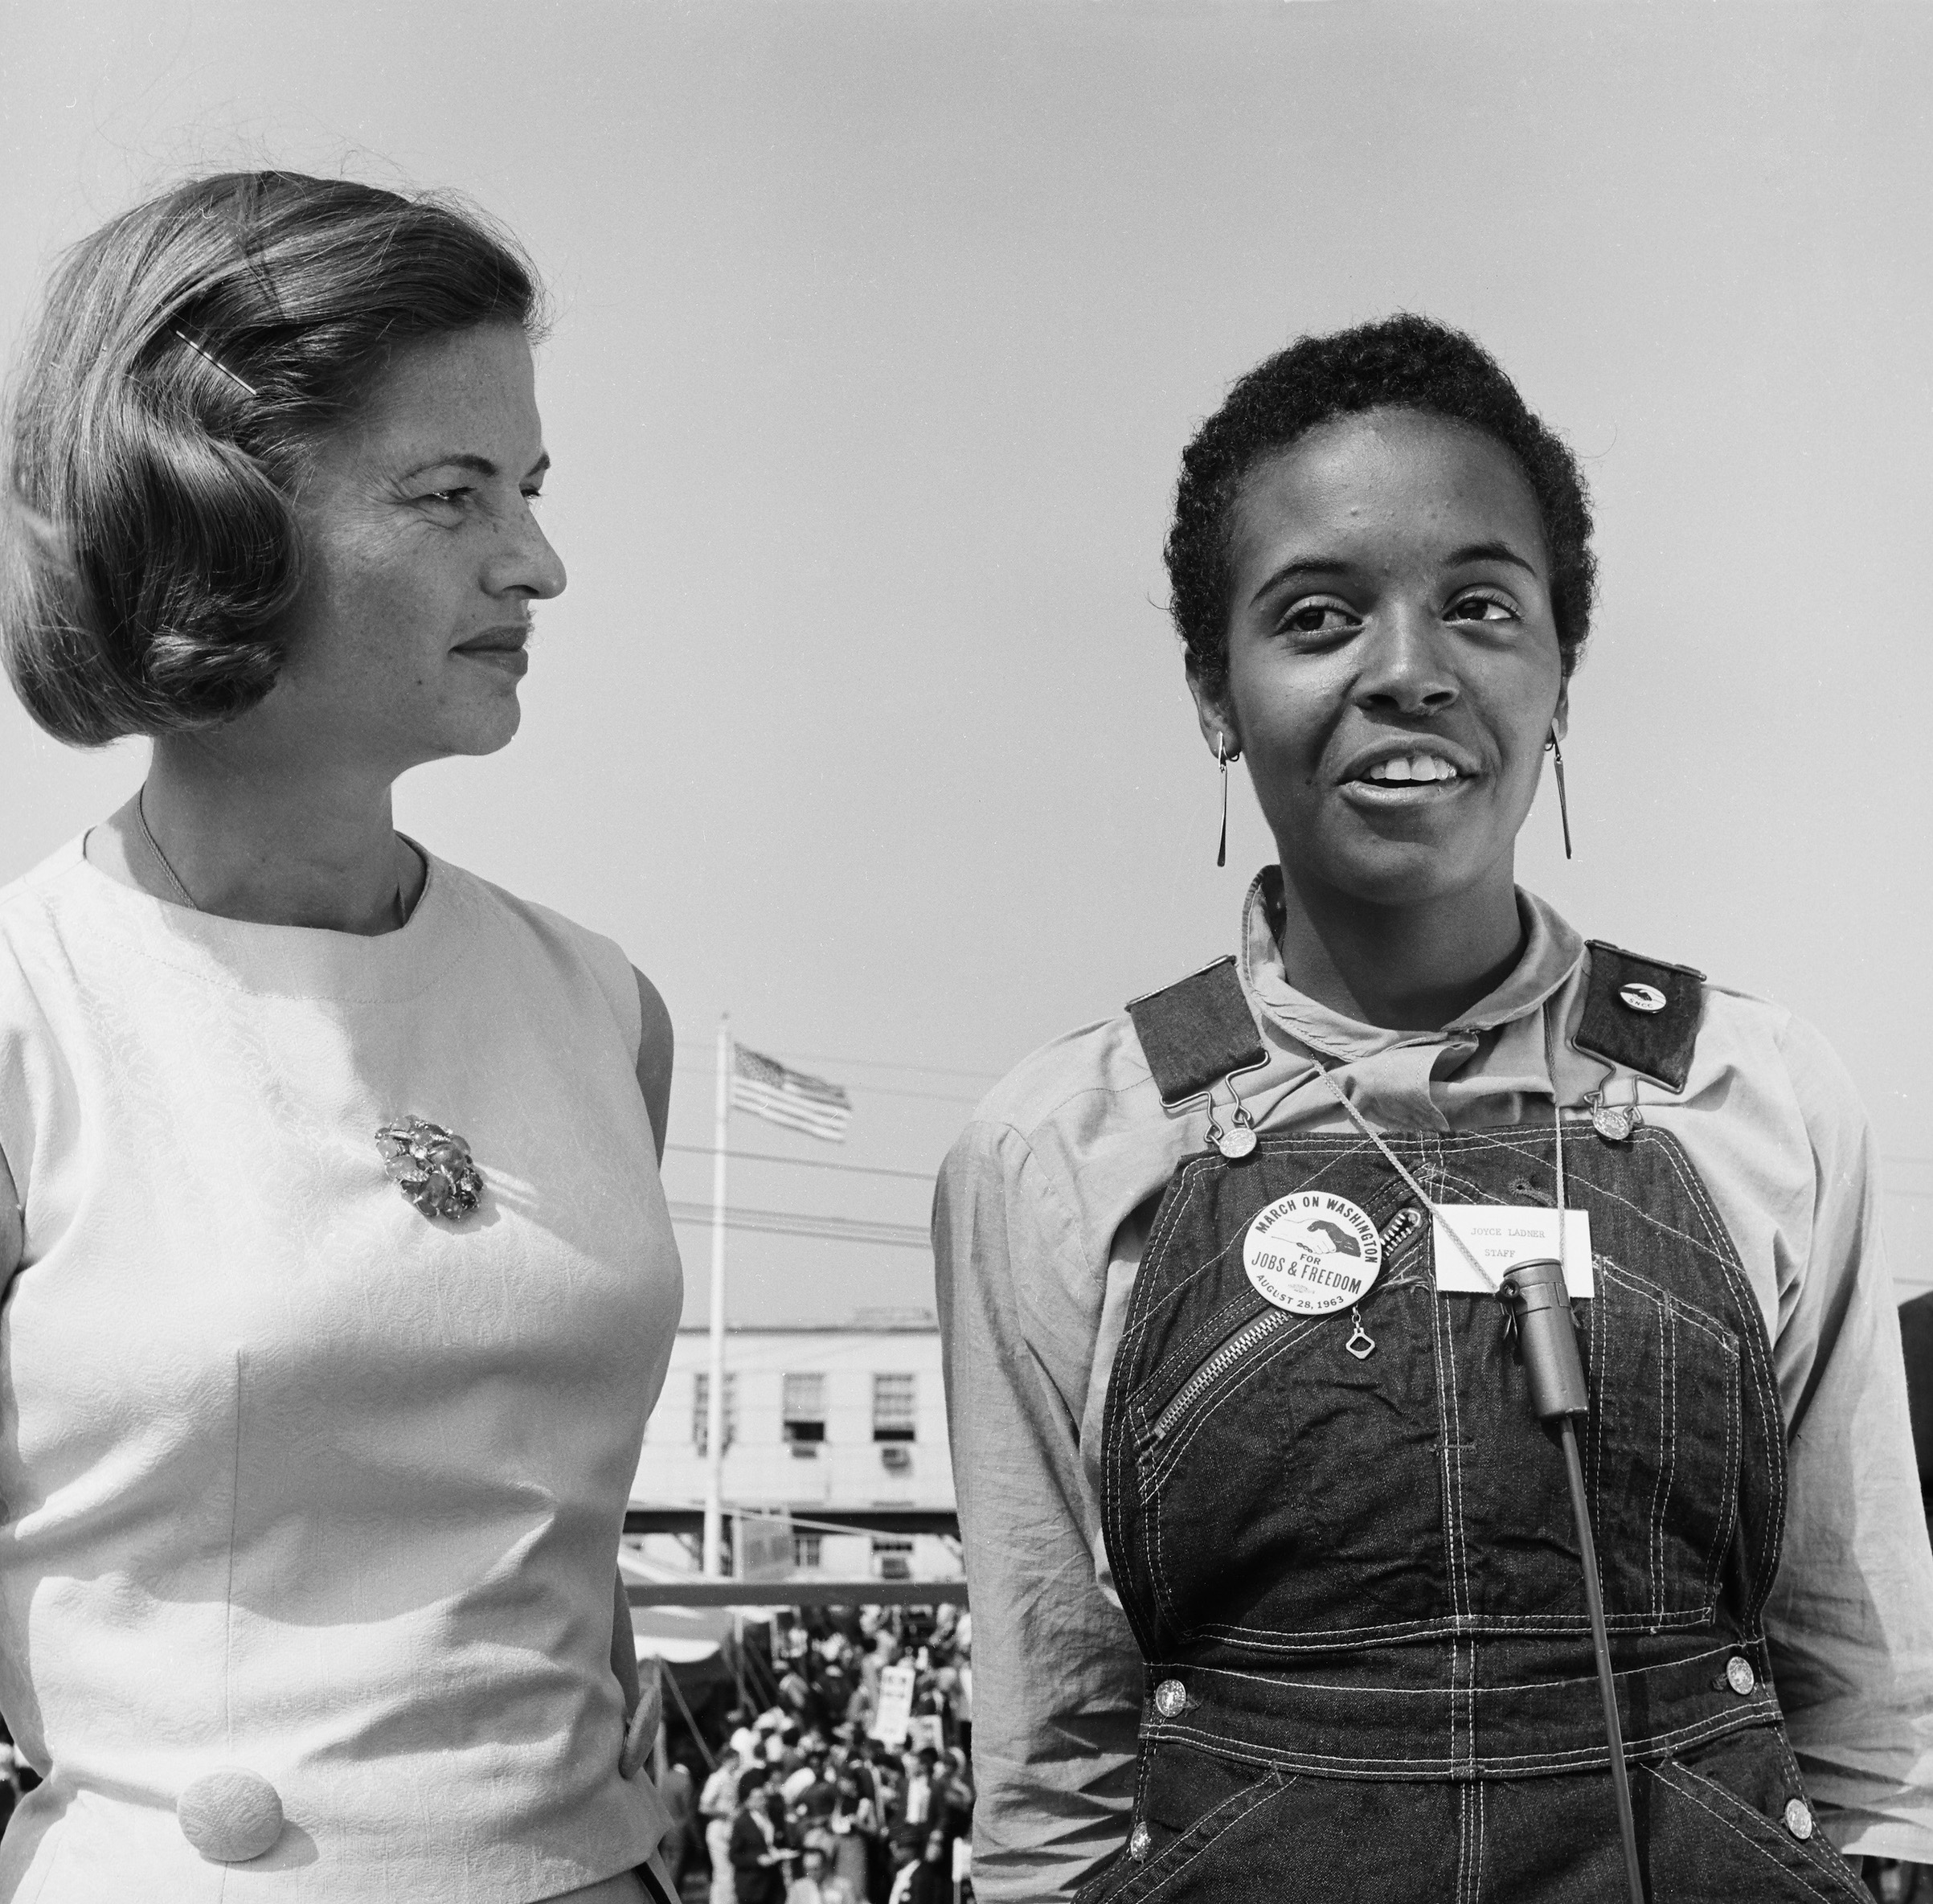 NBC News -- MARCH ON WASHINGTON FOR JOBS AND FREEDOM 1968 -- Pictured: (l-r) NBC News' Nancy Dickerson and Mississippi SNCC March Coordinator Joyce Ladner during the March on Washington for Jobs and Freedom in Washington, D.C., on Aug. 28, 1963.